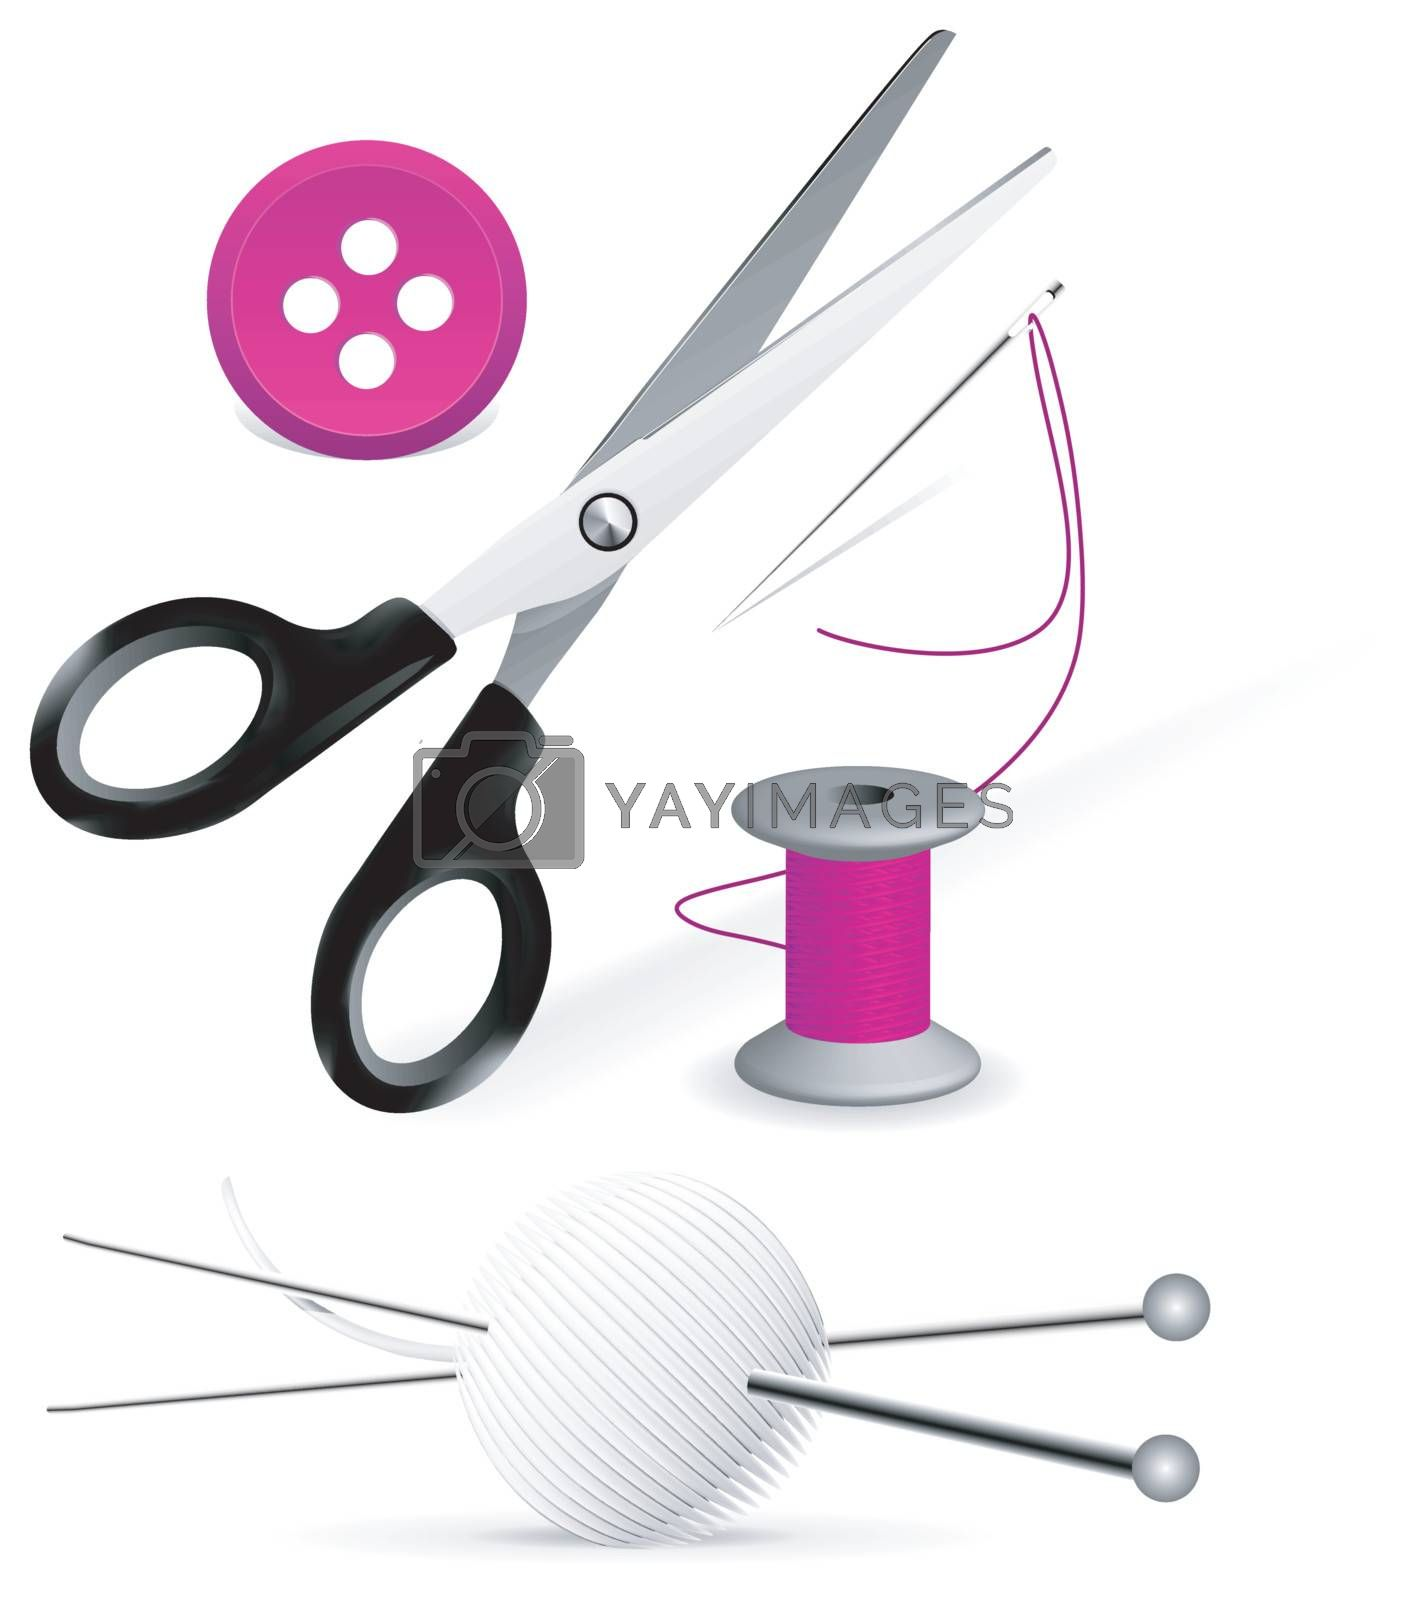 Items for knitting and sewing on white